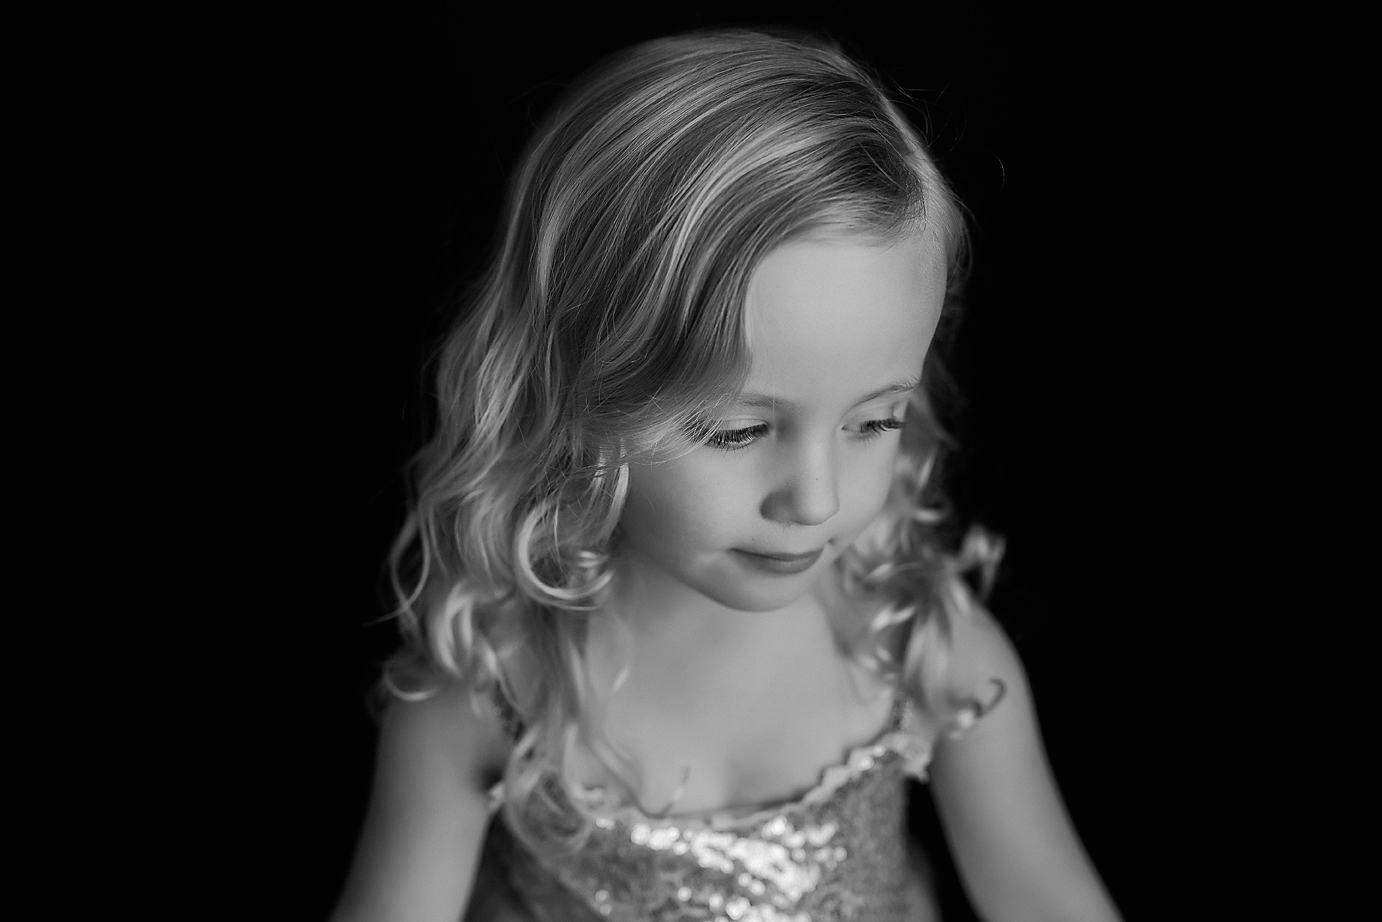 orange-county-child-photography-simplicity-session-black-and-white-girl-mood.jpg